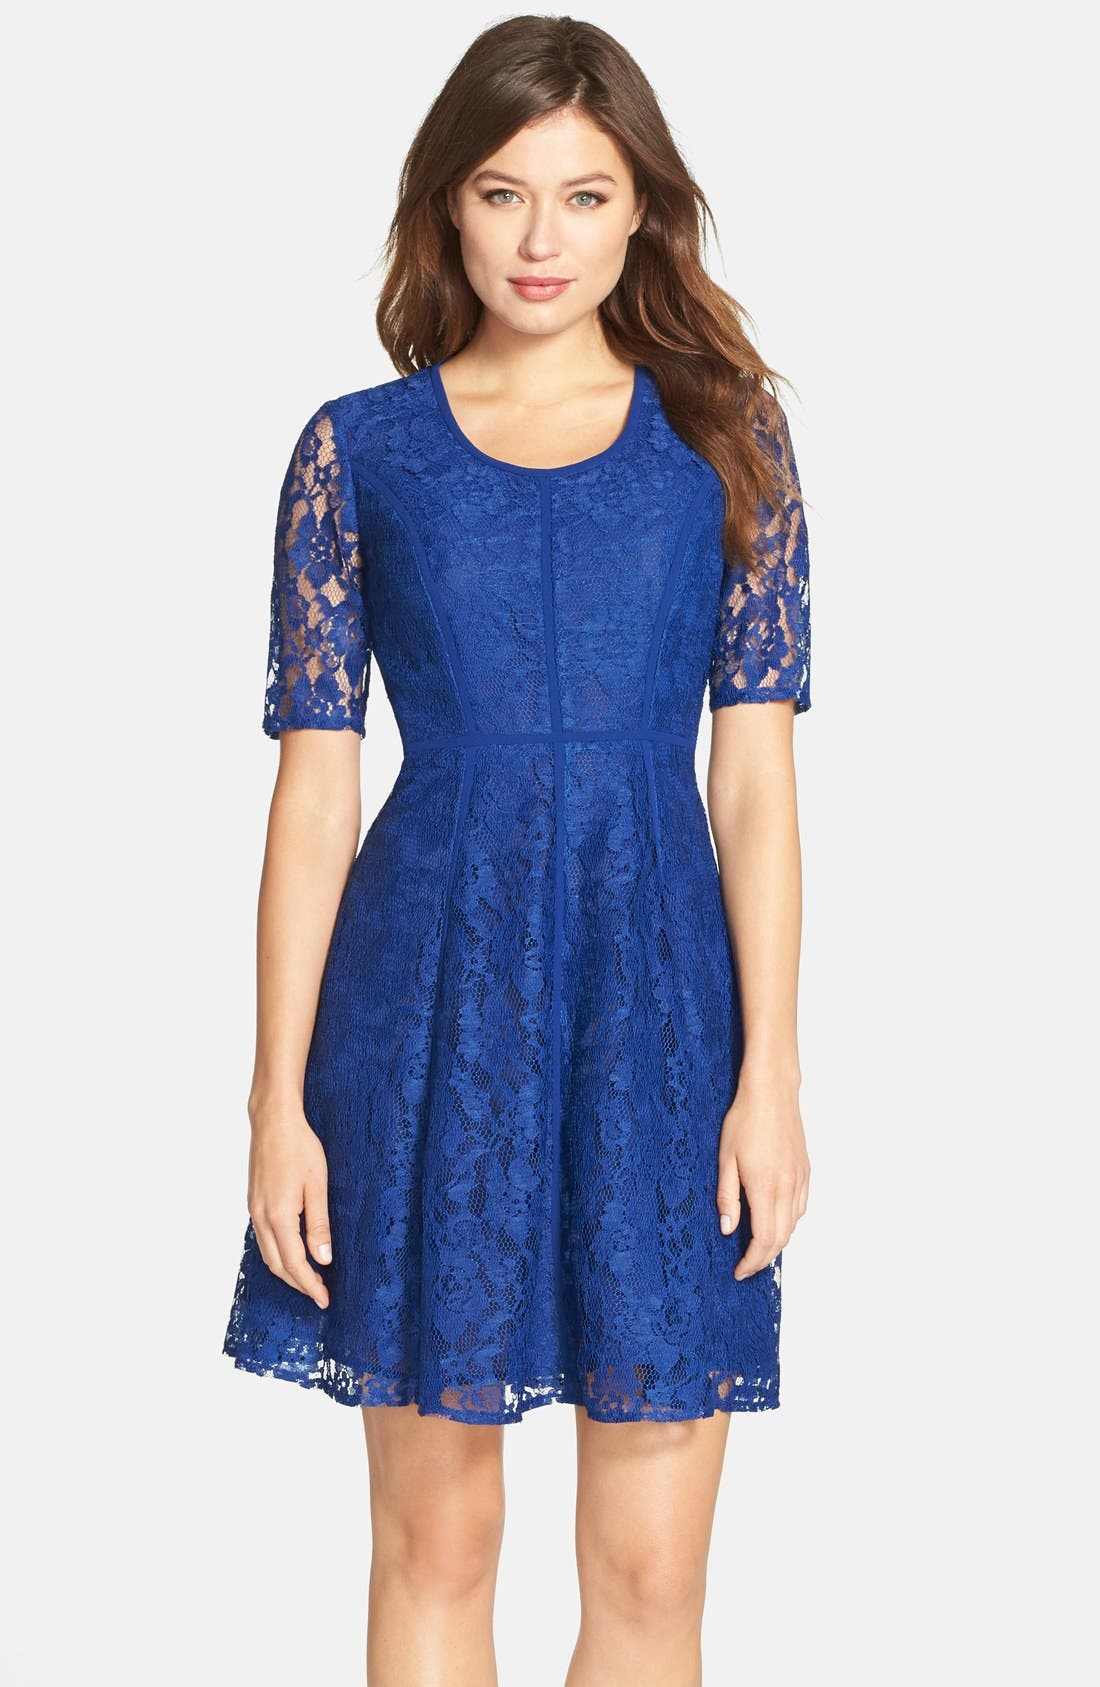 Alternate Image 1 Selected - Gabby Skye Lace Fit & Flare Dress